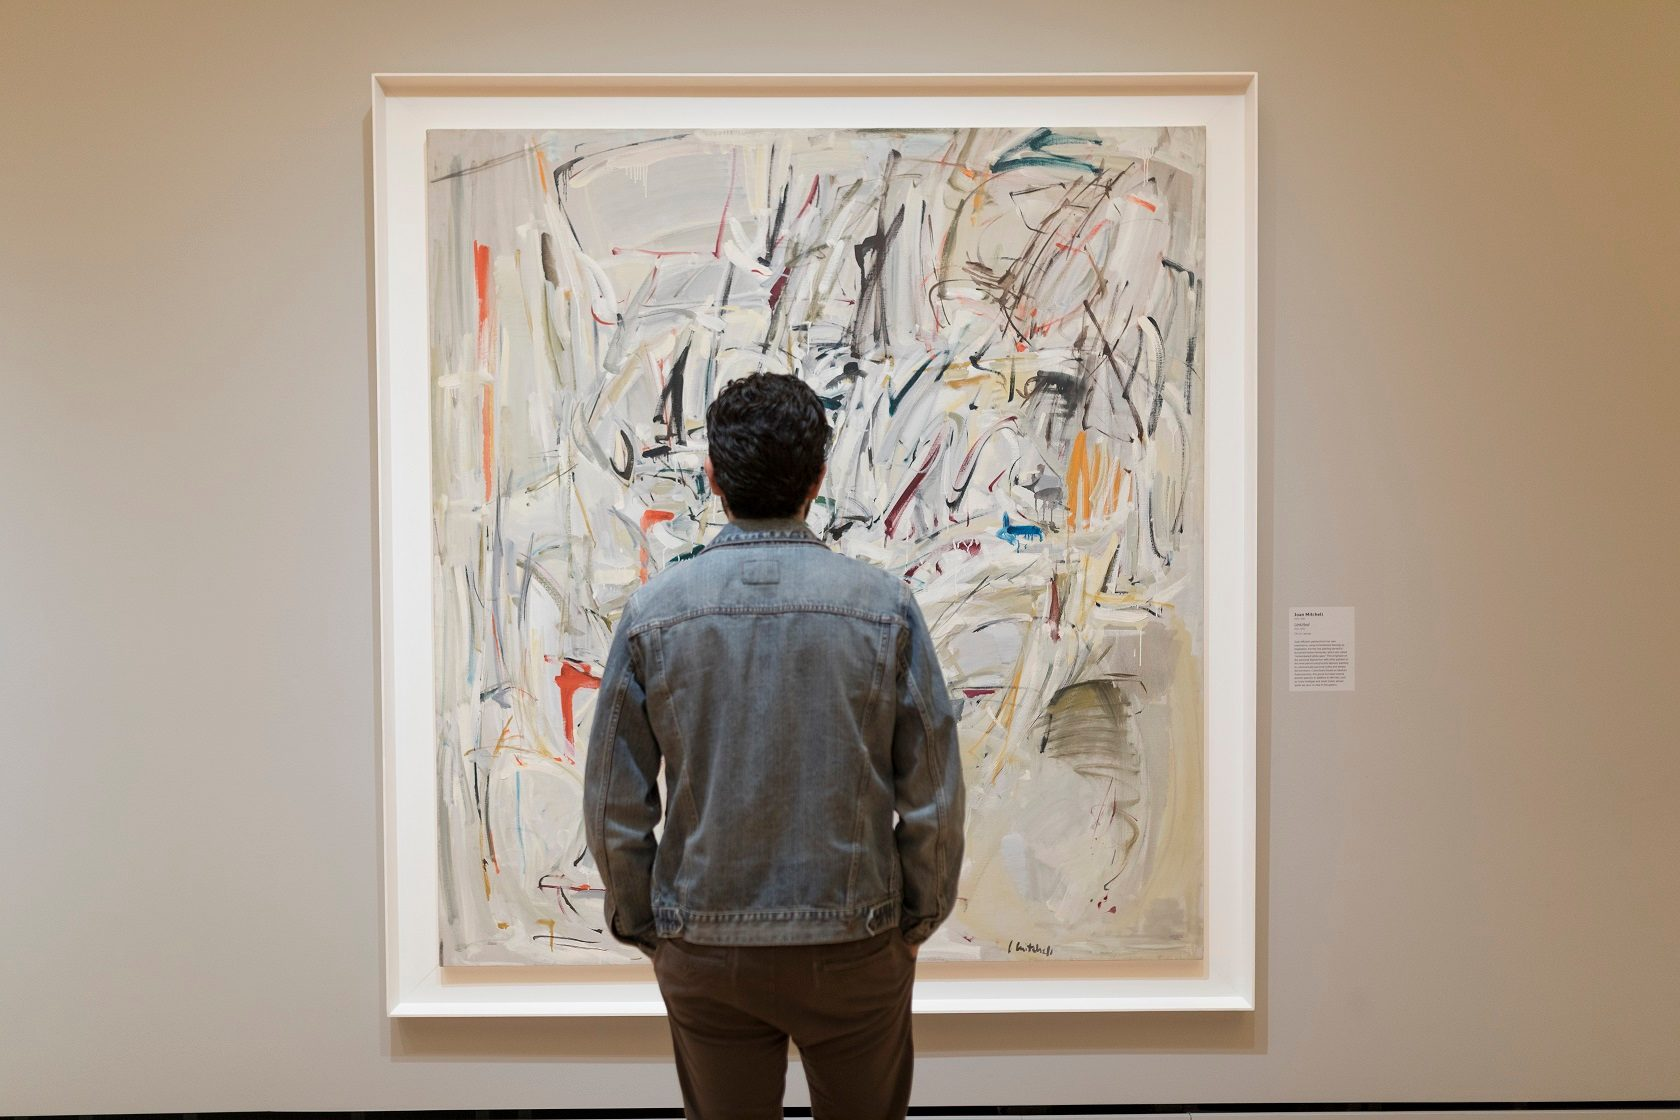 Man stands looking at abstract painting in front of him